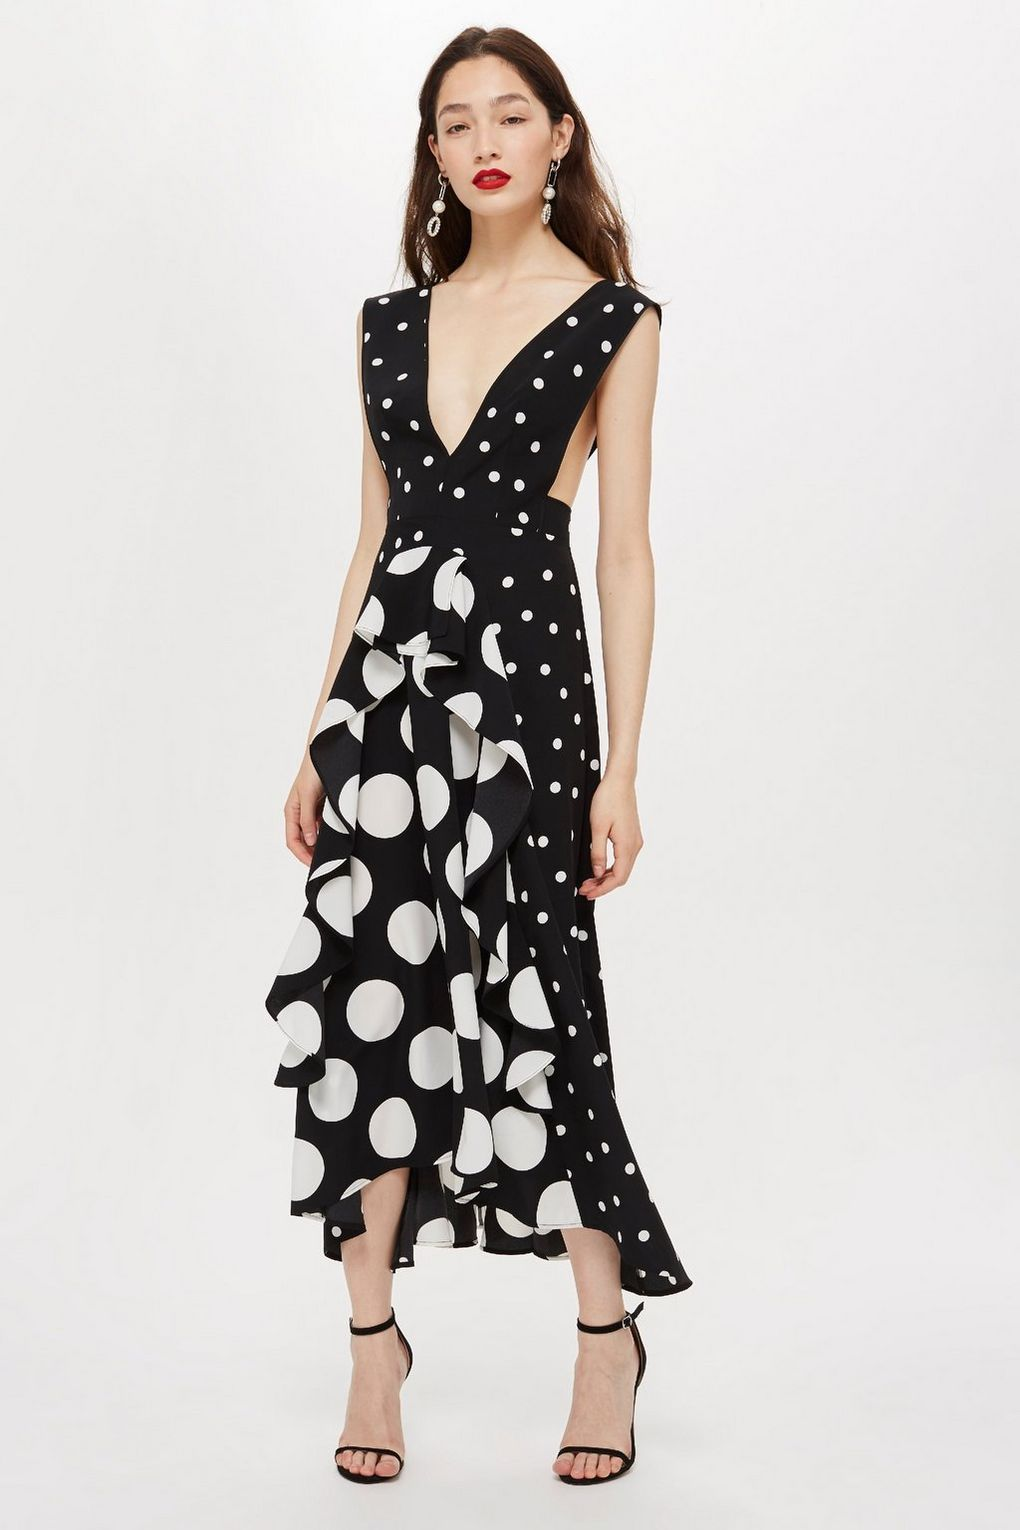 eecad599736d6 Monochrome Spot Pinafore Dress - Dresses - Clothing - Topshop USA ...